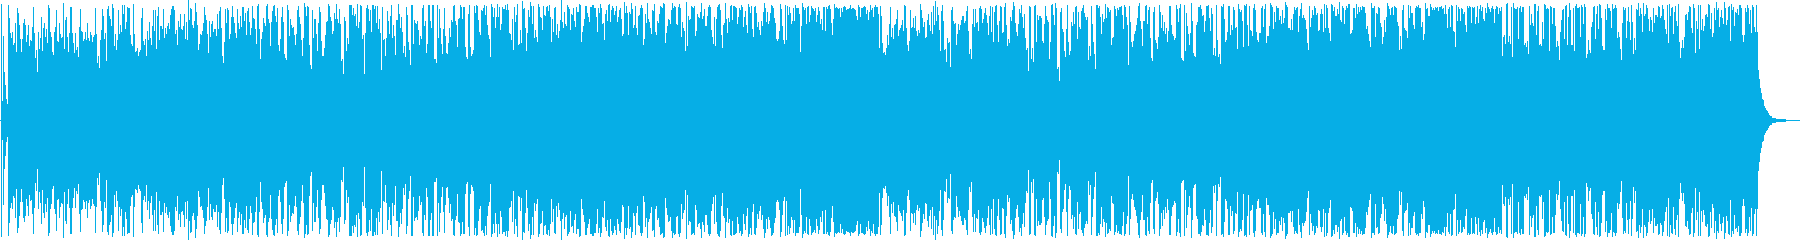 Jazz pops like you are in a bar's reproduced waveform